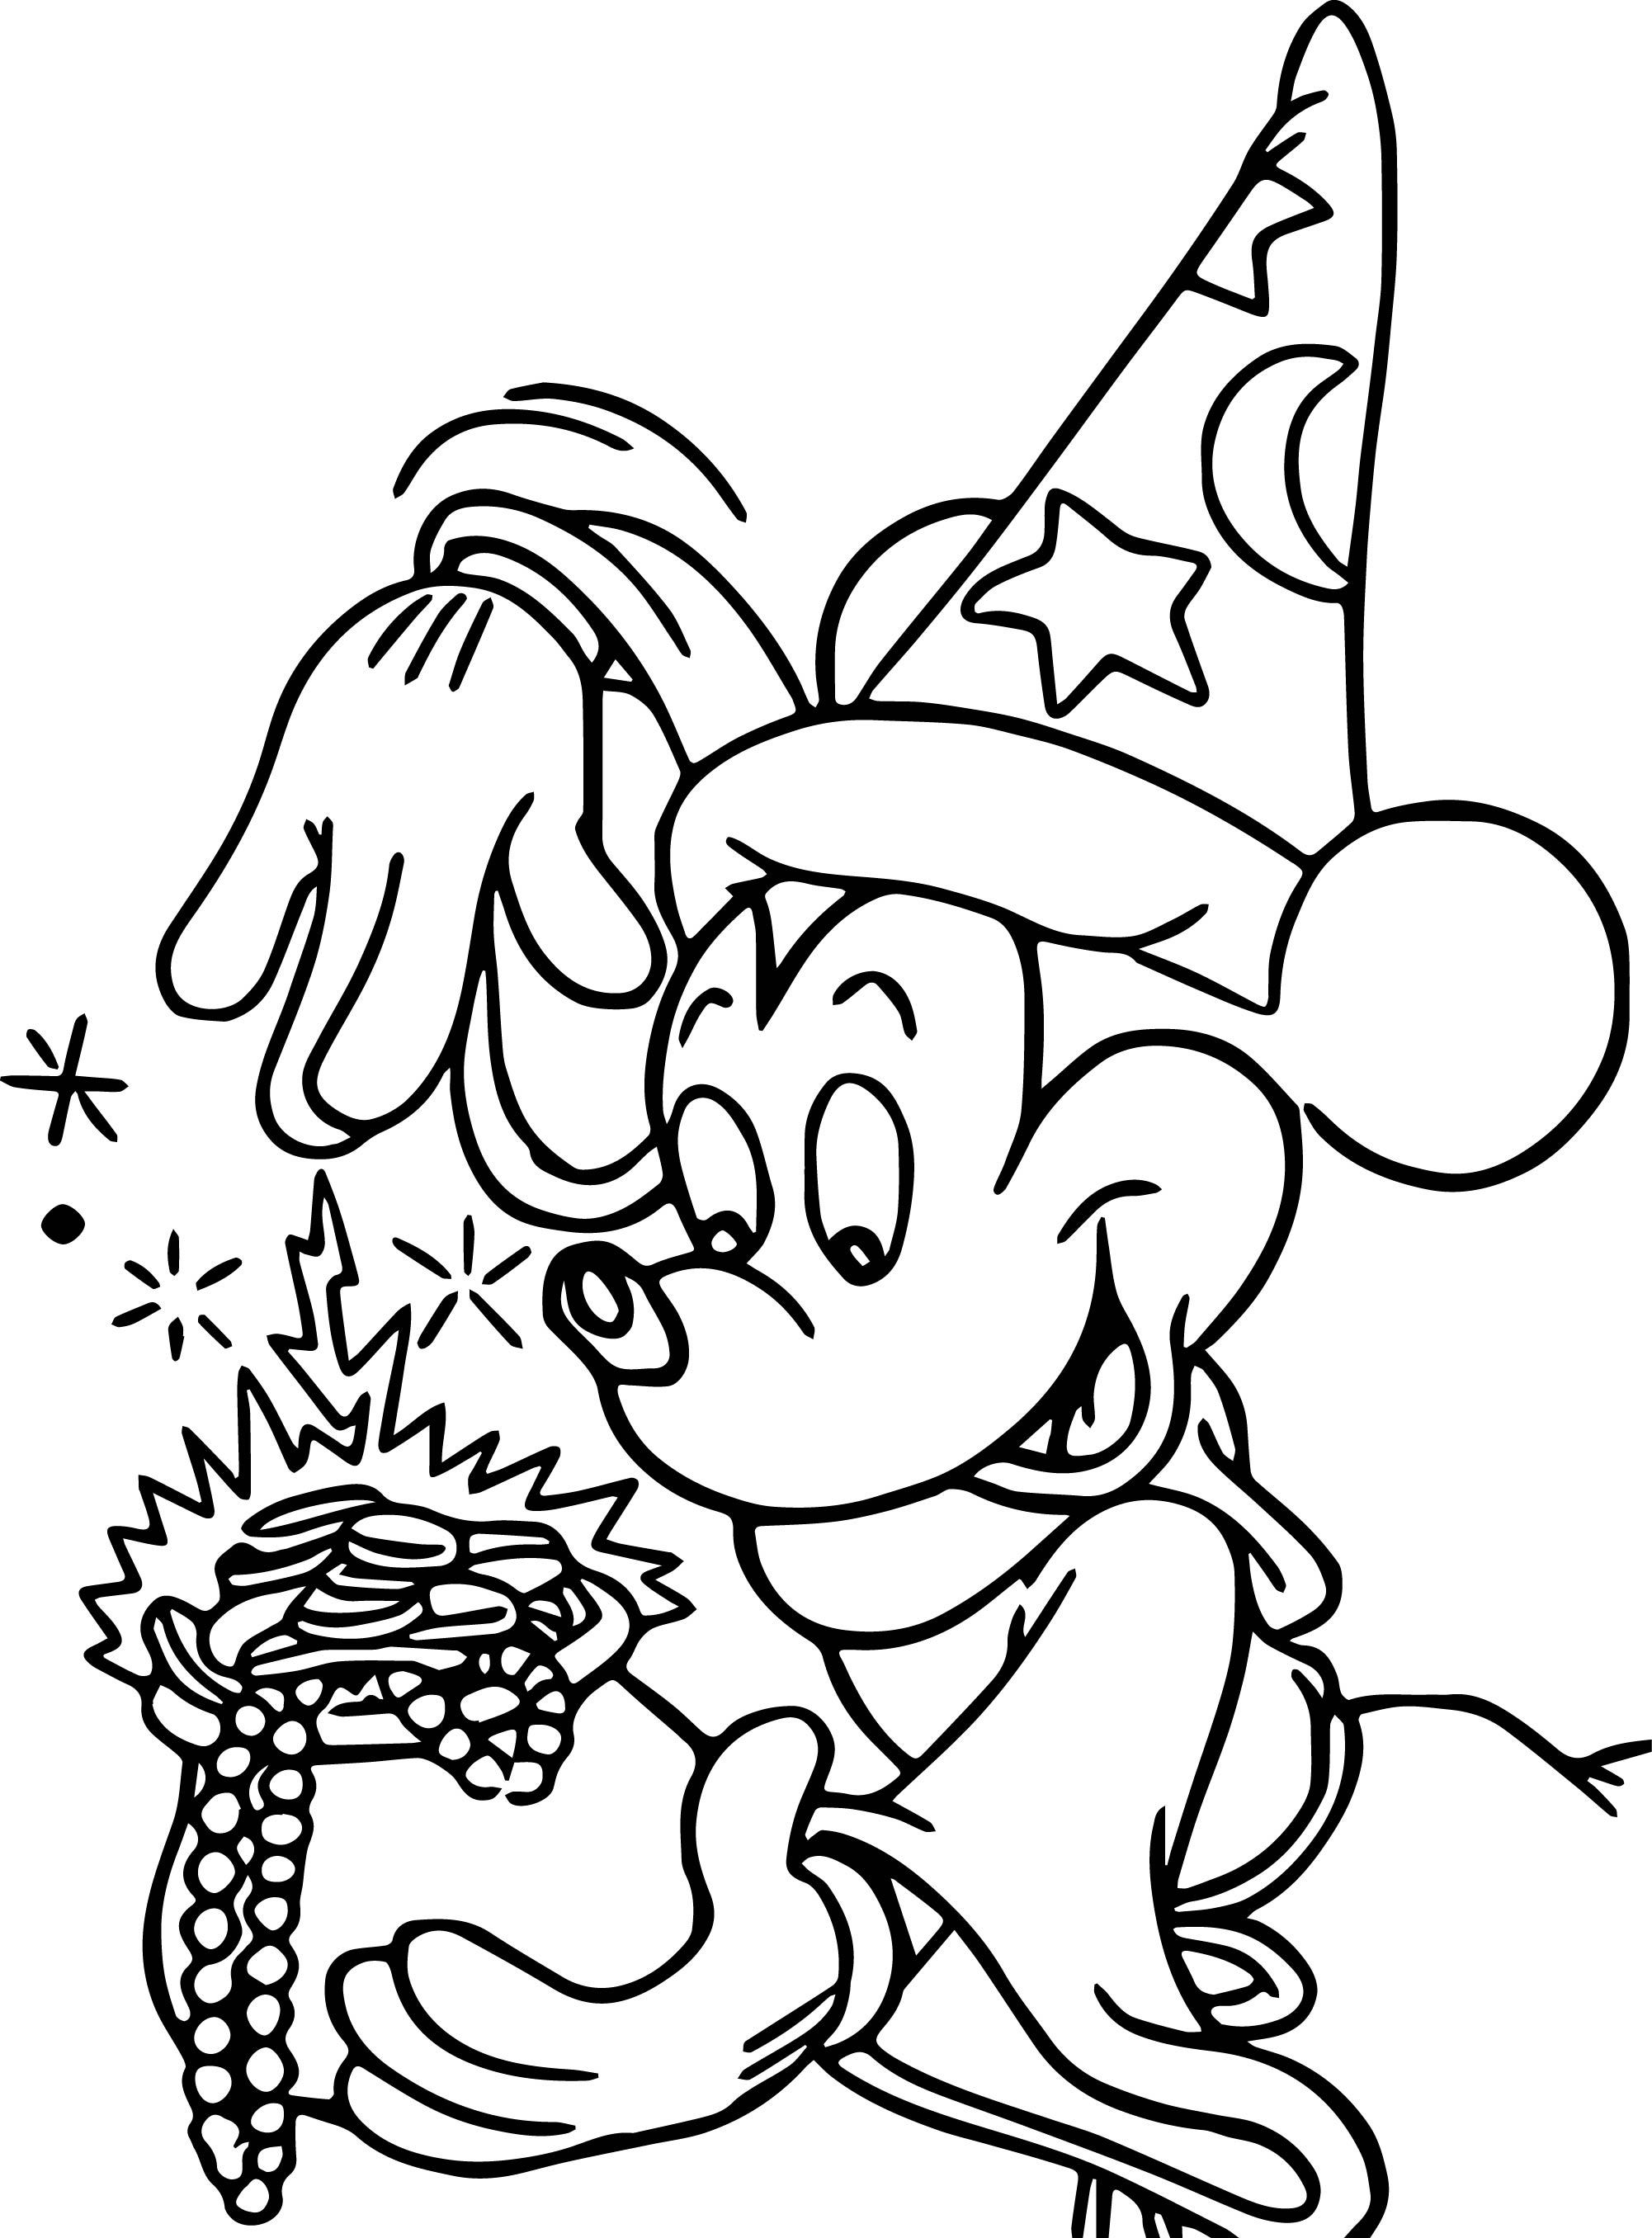 Disney fantasia coloring pages for Mickey coloring pages